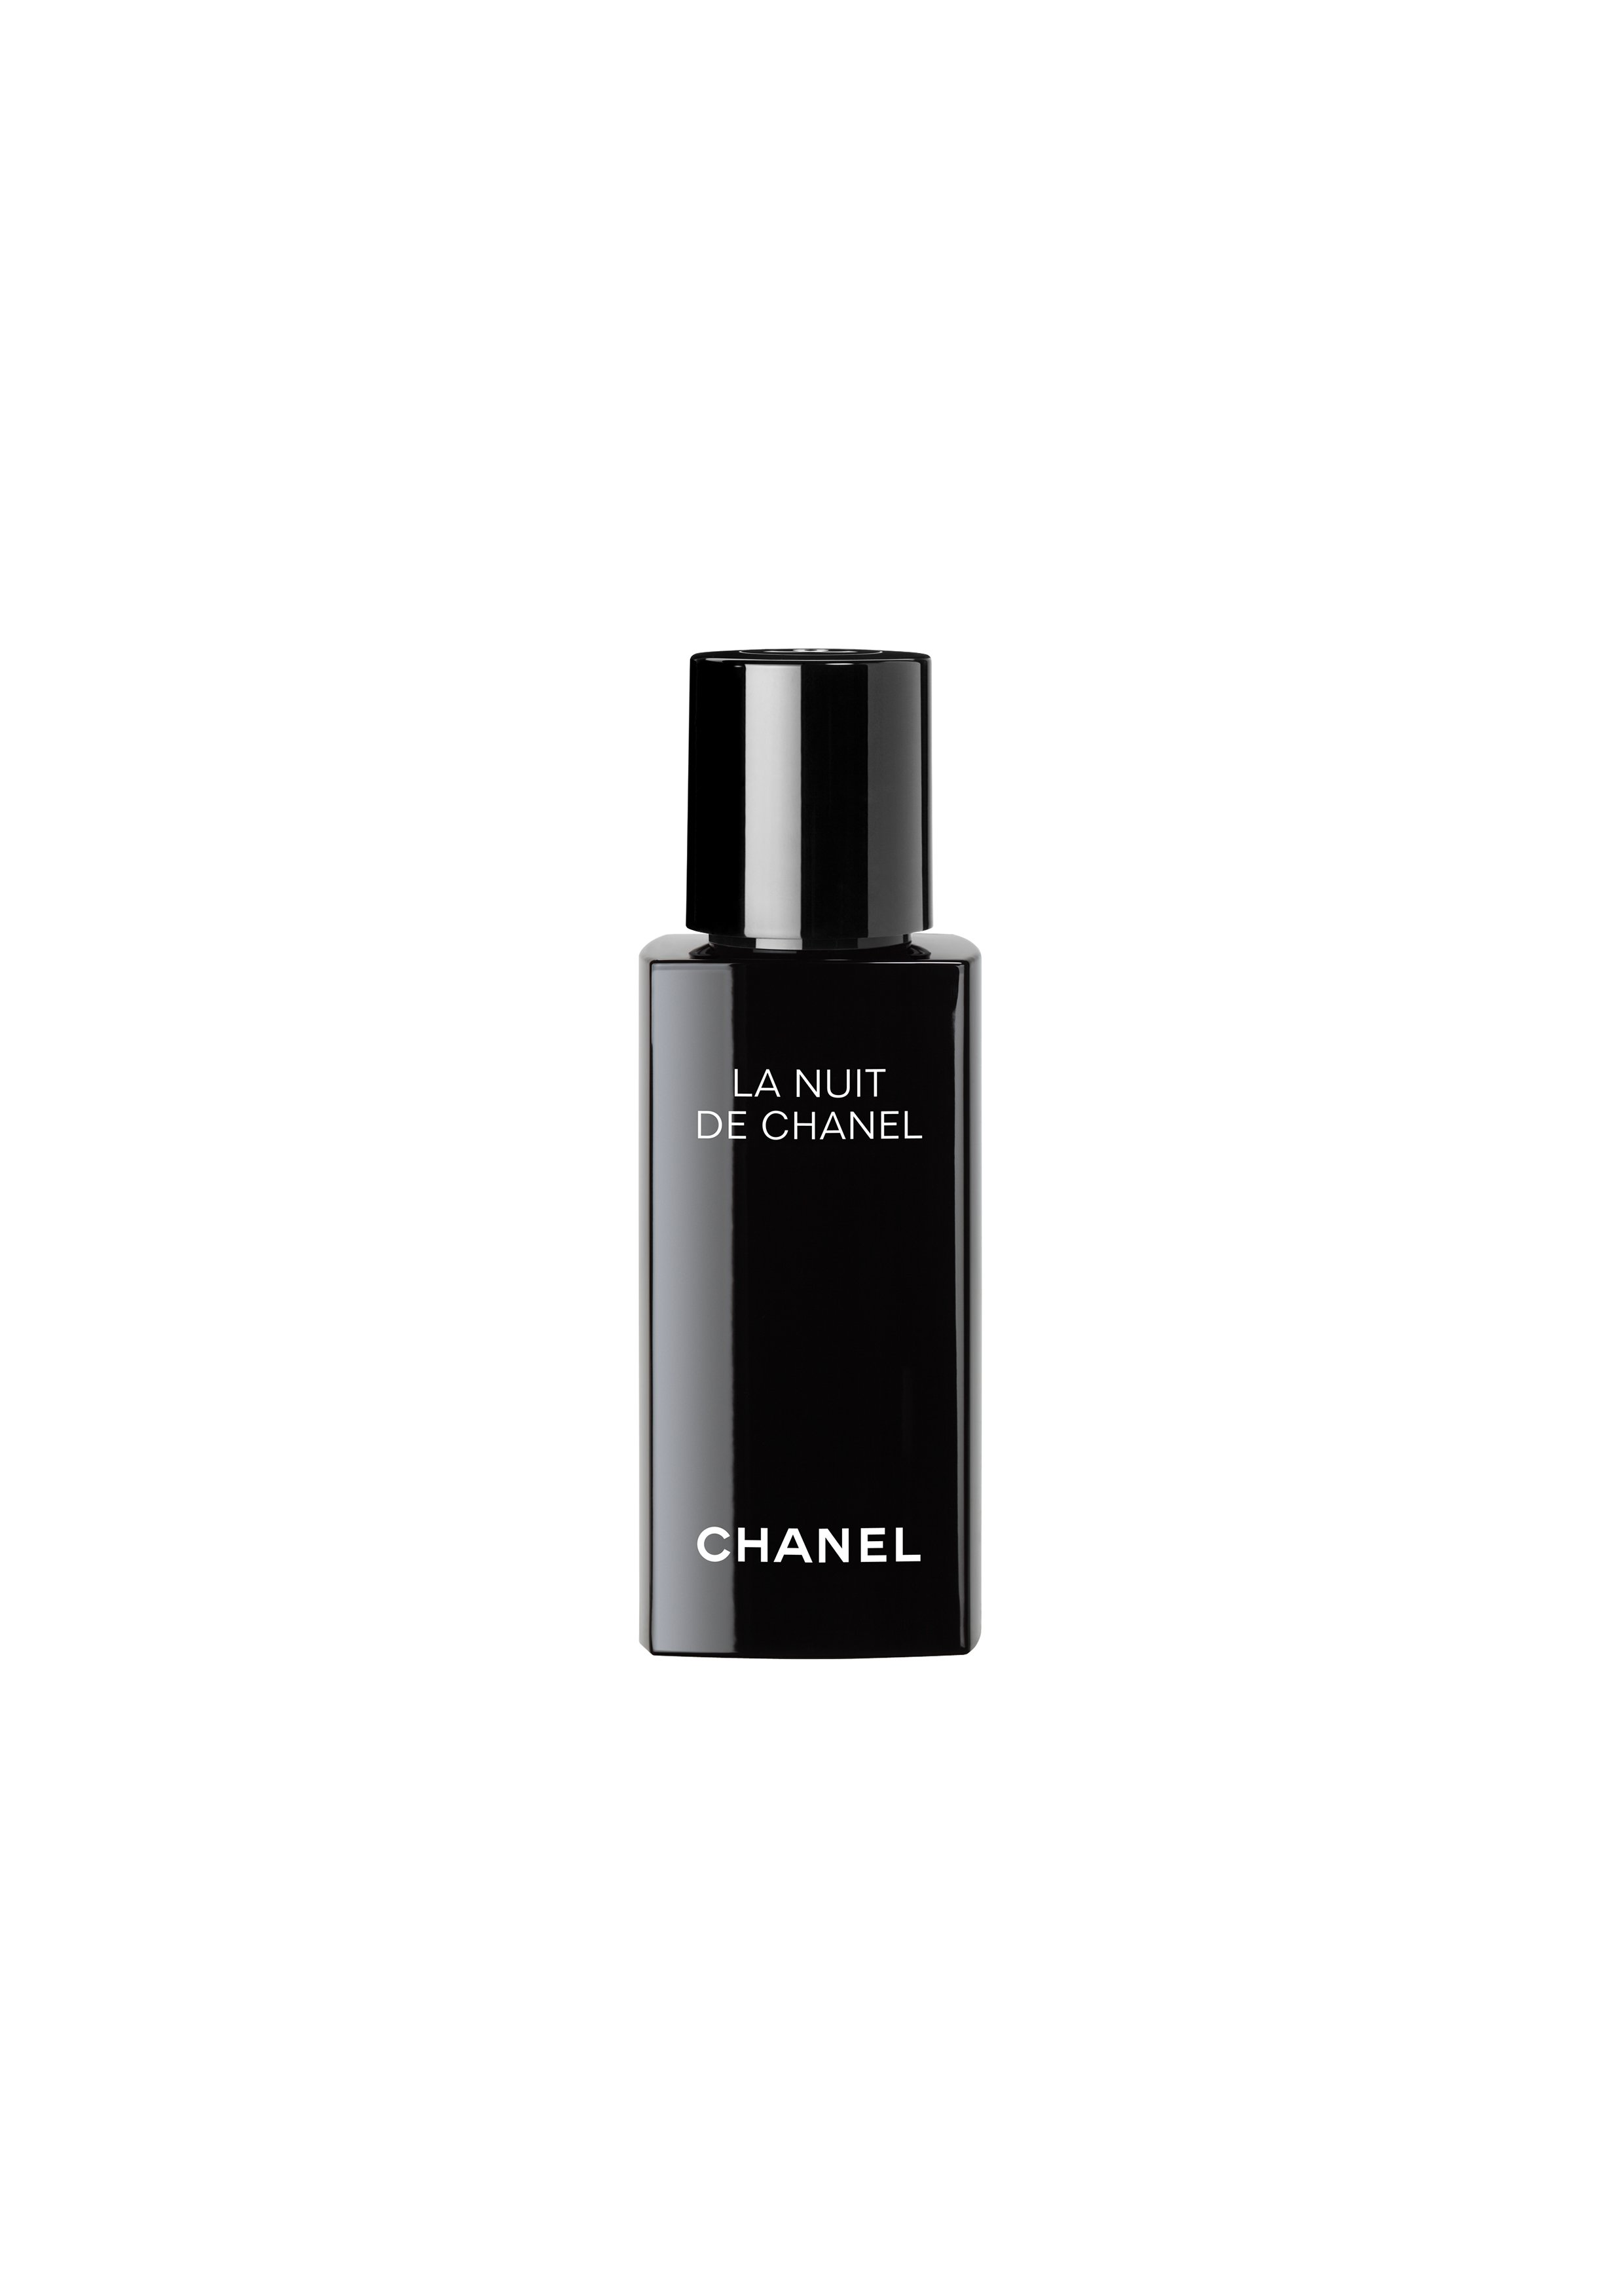 Chanel La Nuit De Chanel 50ml